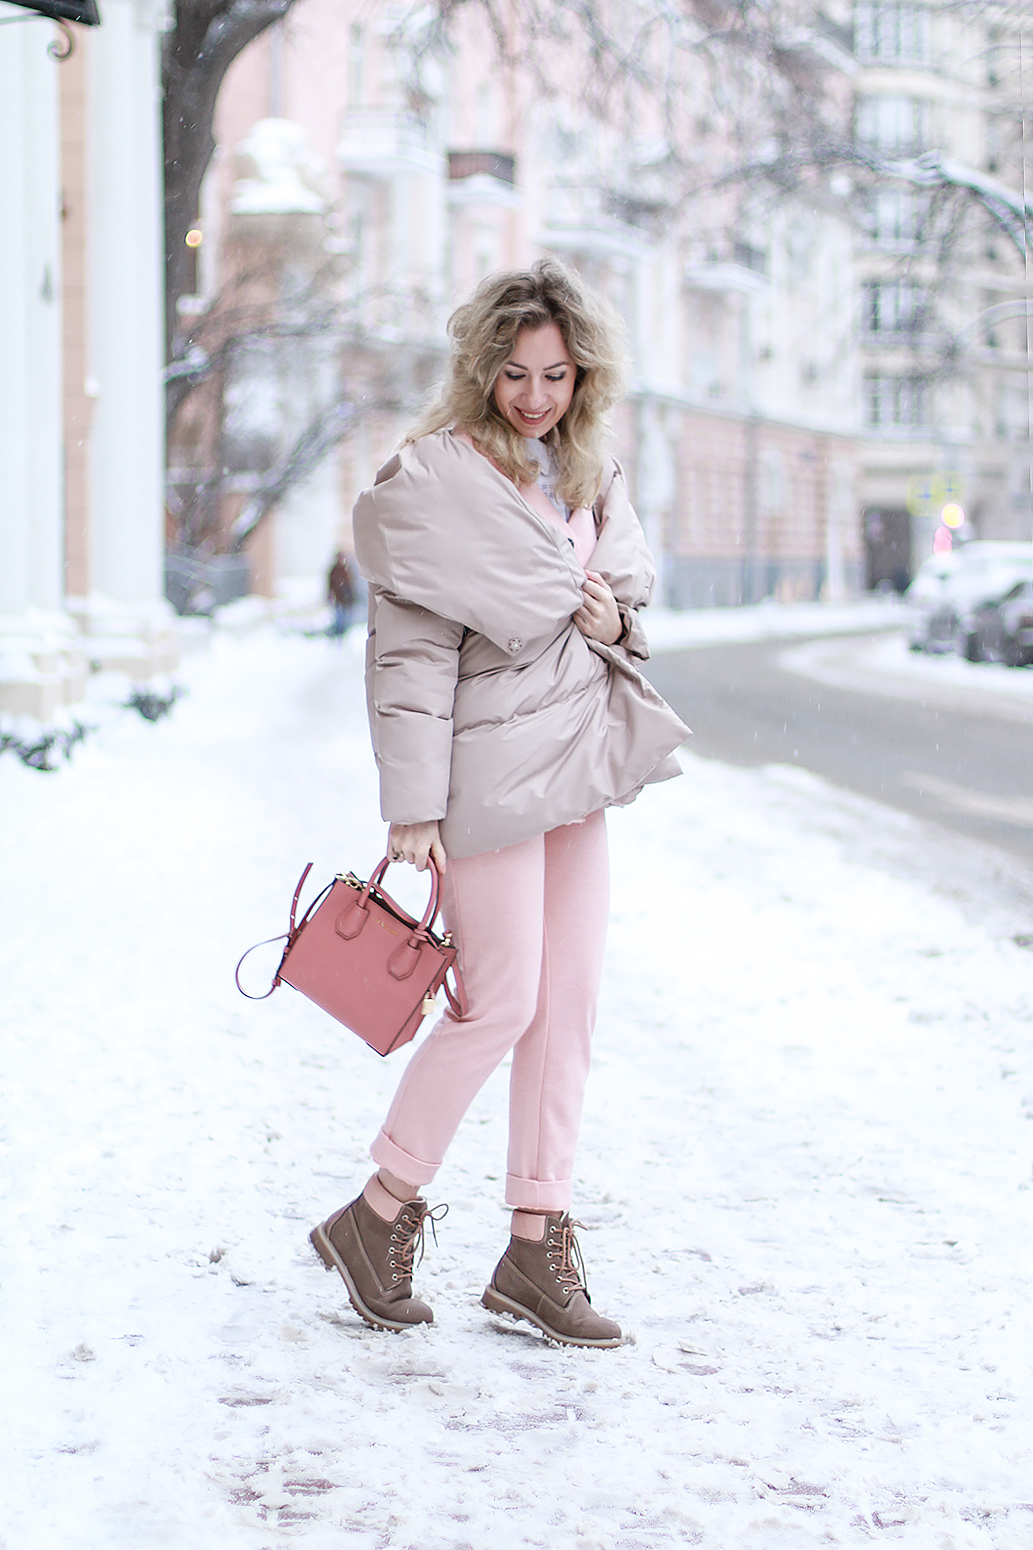 Margarita_Maslova_Ritalifestyle_Fashion_blogger_Moscow_Romantic_style_sport_chic_Pastel_looks_puffy_jacket